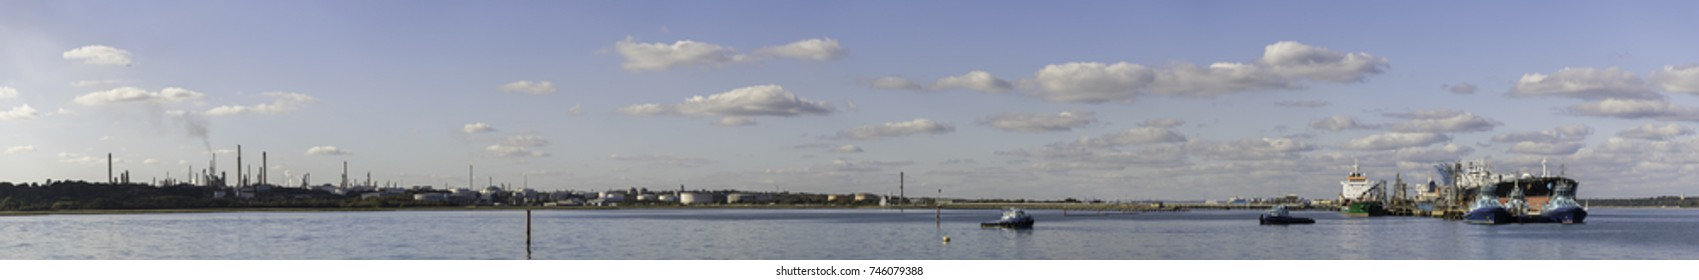 Panorama of an oil refinery on a sunny day.